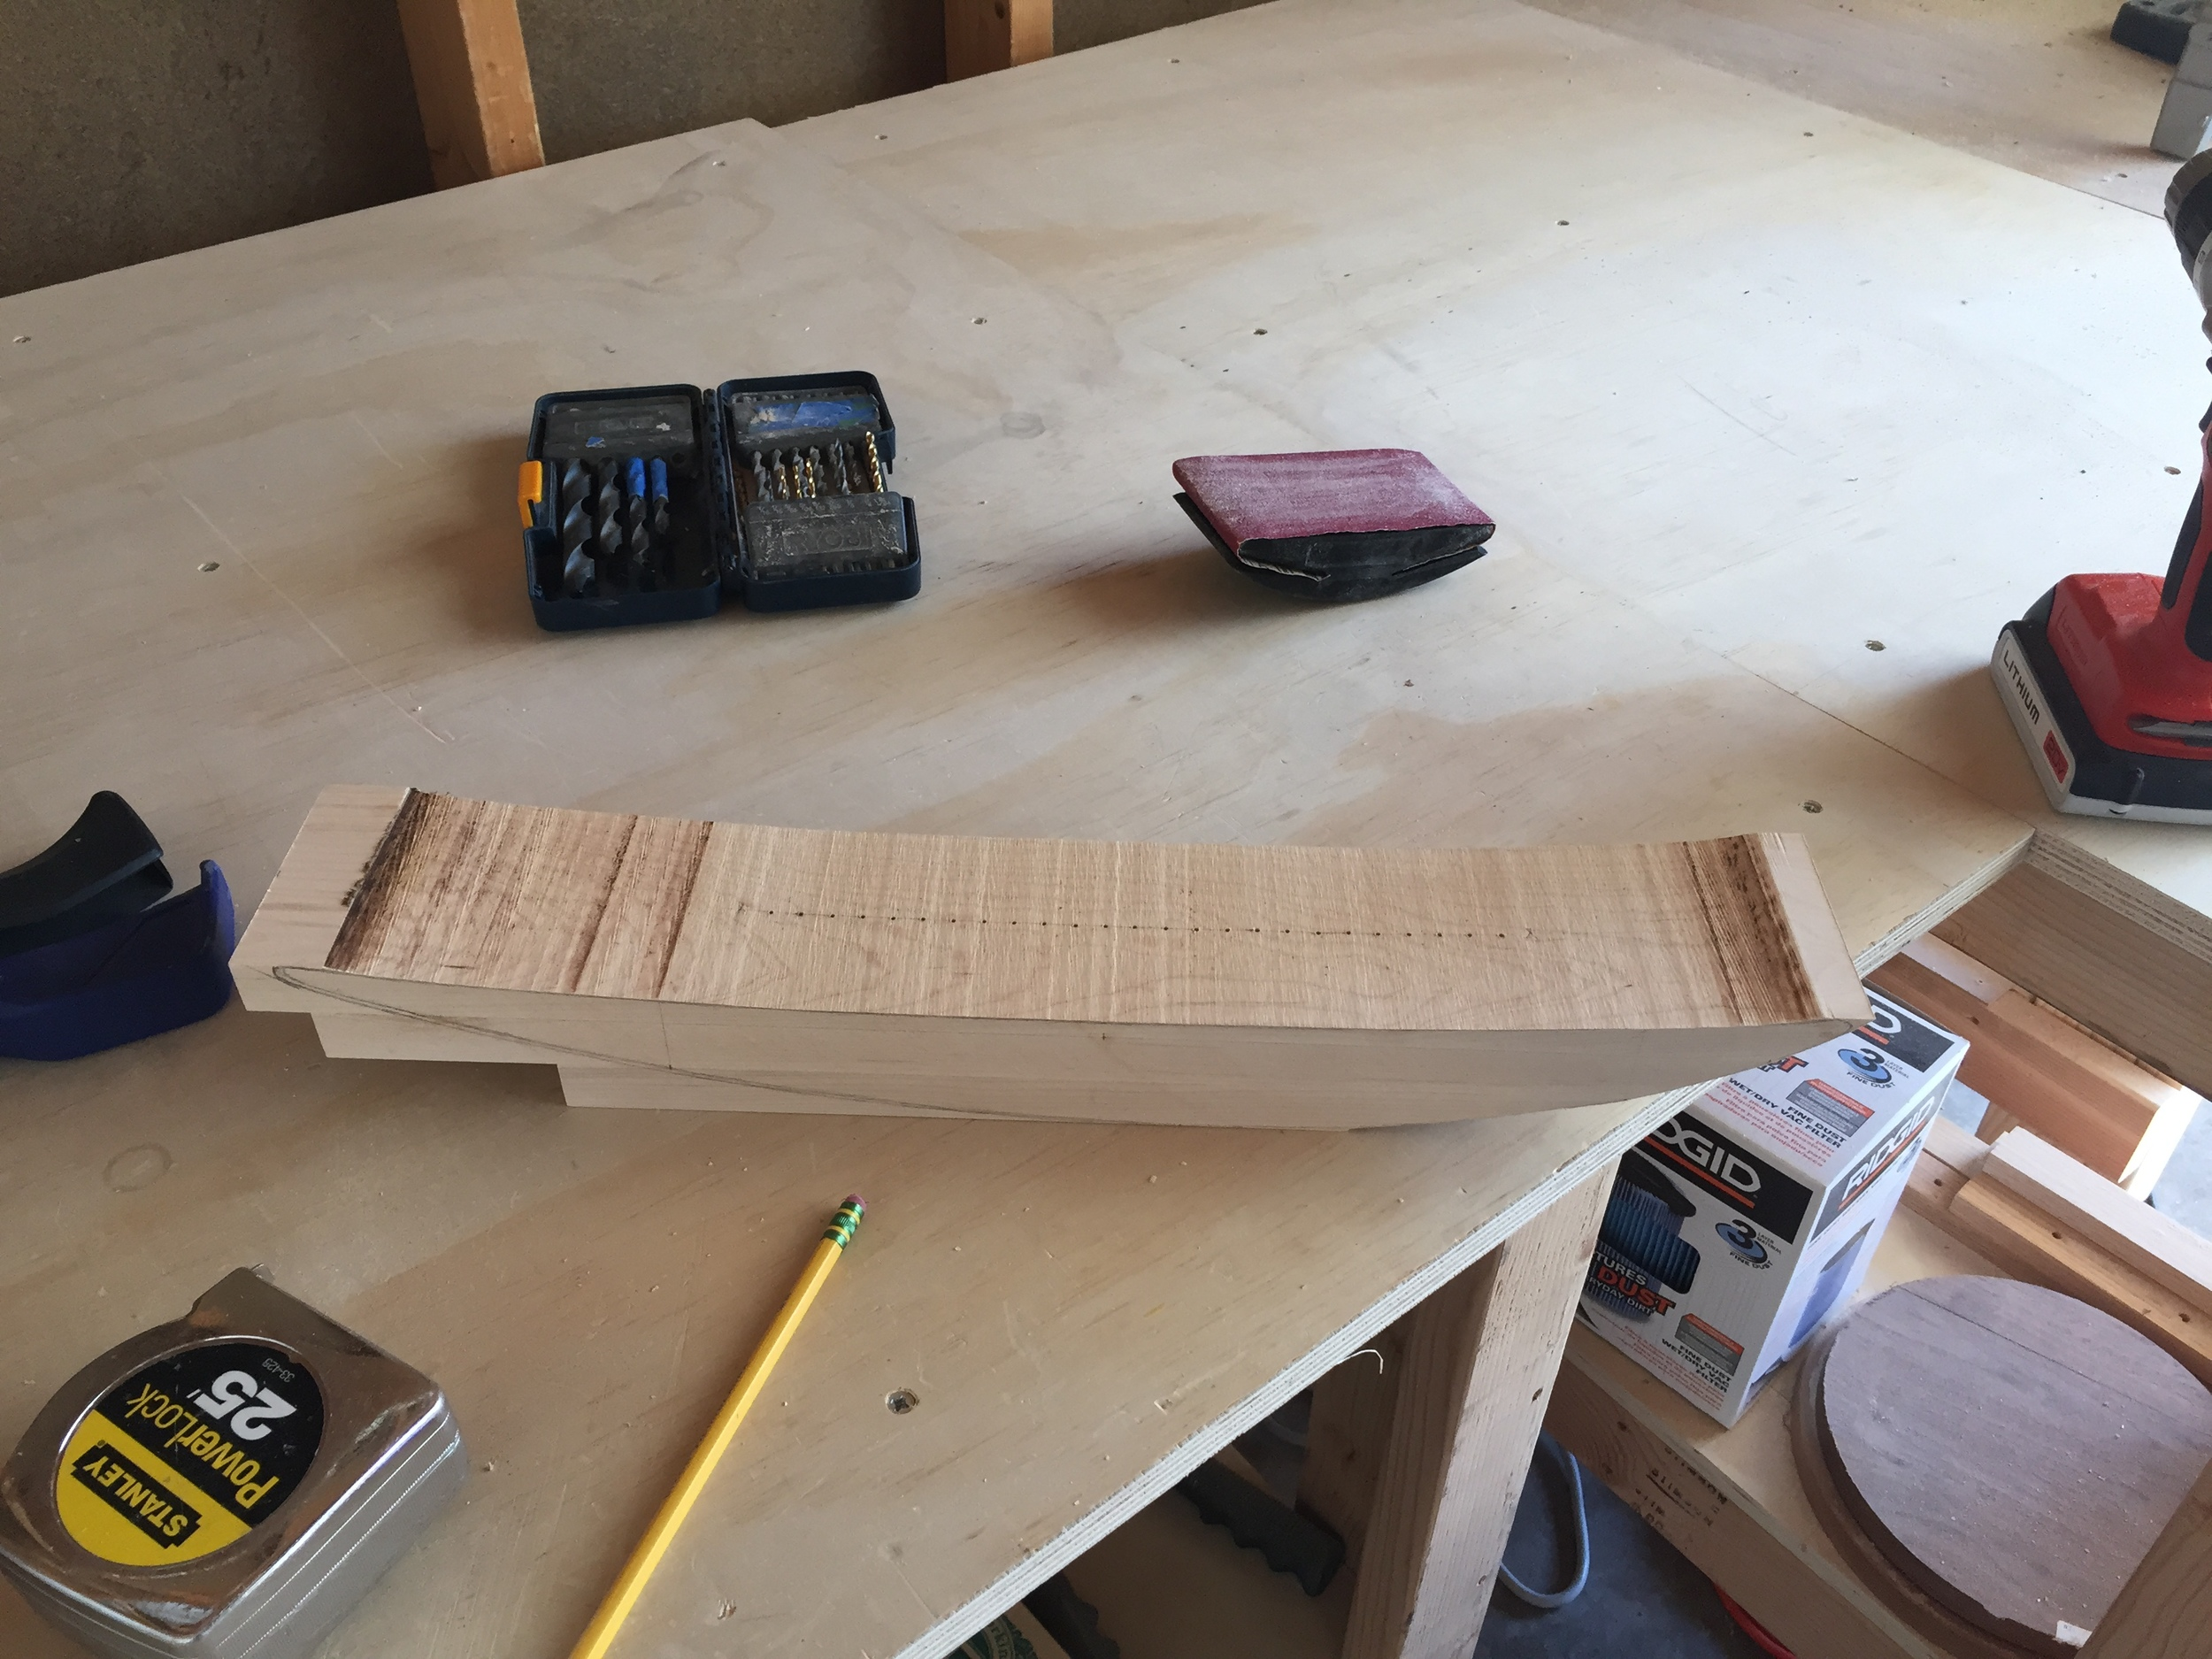 The three birch layers. Here I have already started shaping them with the band saw. The top two layers are glued together. The bottom is pegged in place with wood dowels.